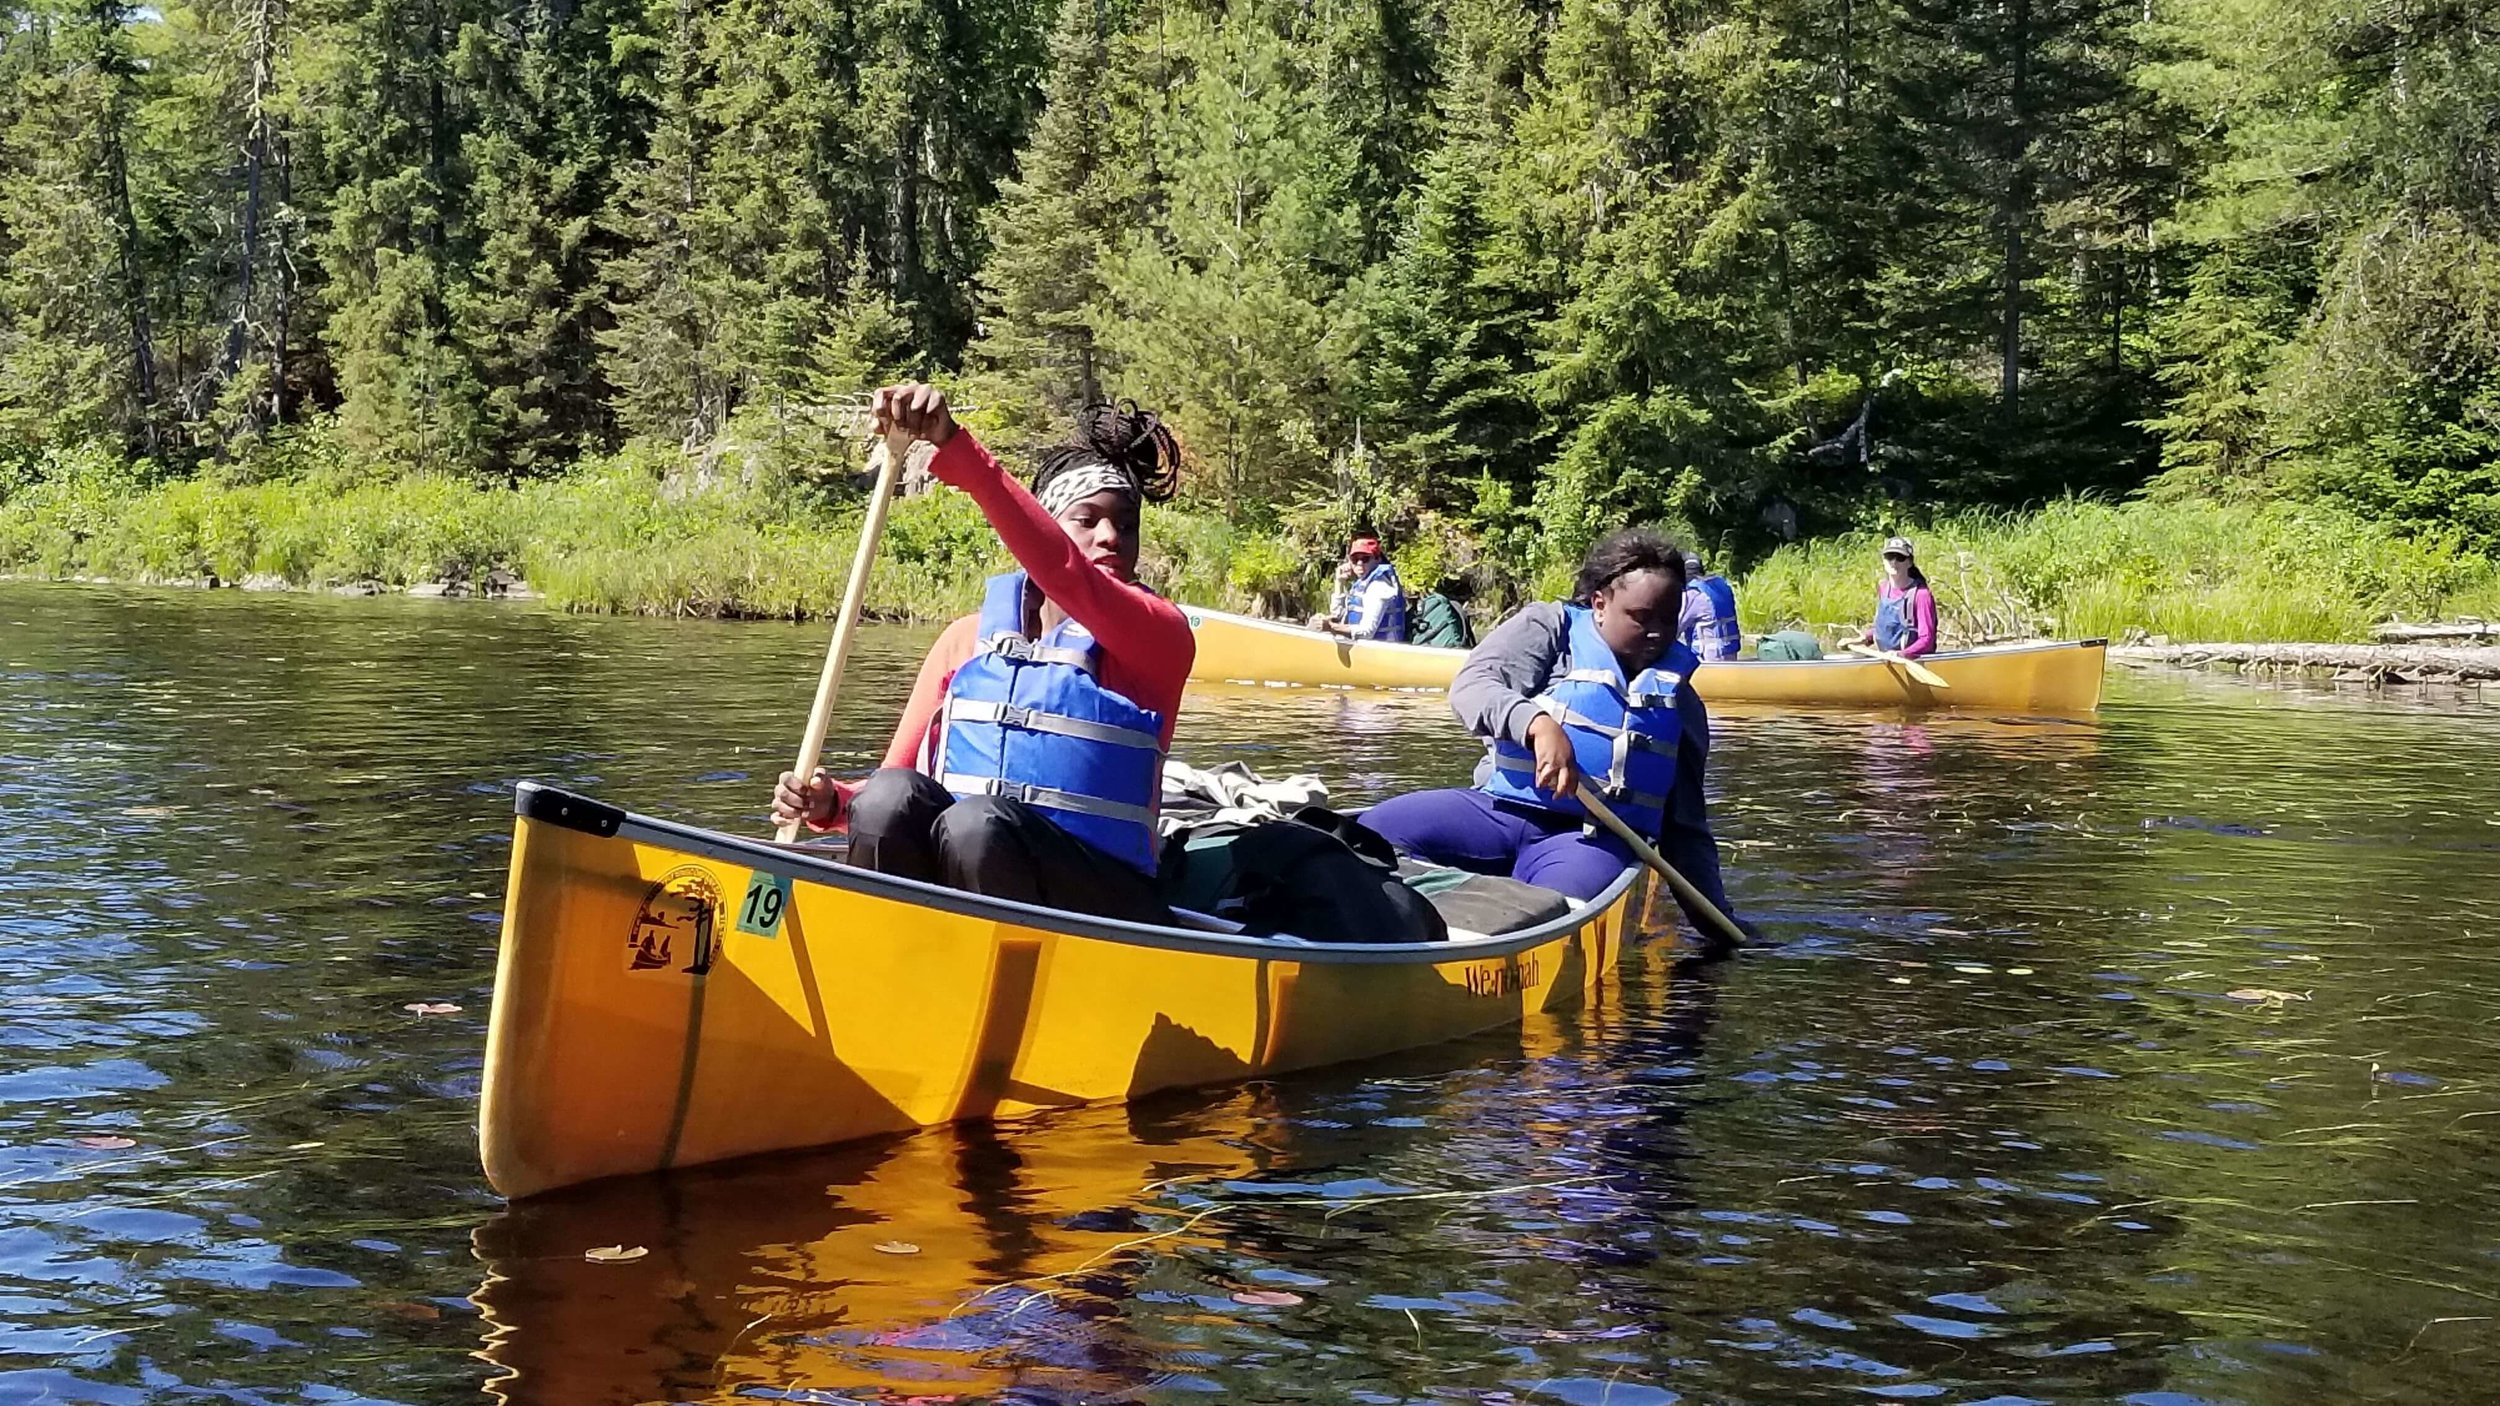 IntroducE young people to the wilderness - In our hyper-connected, digital world, wilderness is more important than ever, especially for young people. There should be no Boundaries to the Boundary Waters. Through a number of programs, we introduce kids from diverse backgrounds to the splendors fo the wilderness and build the next generation of wilderness stewards.